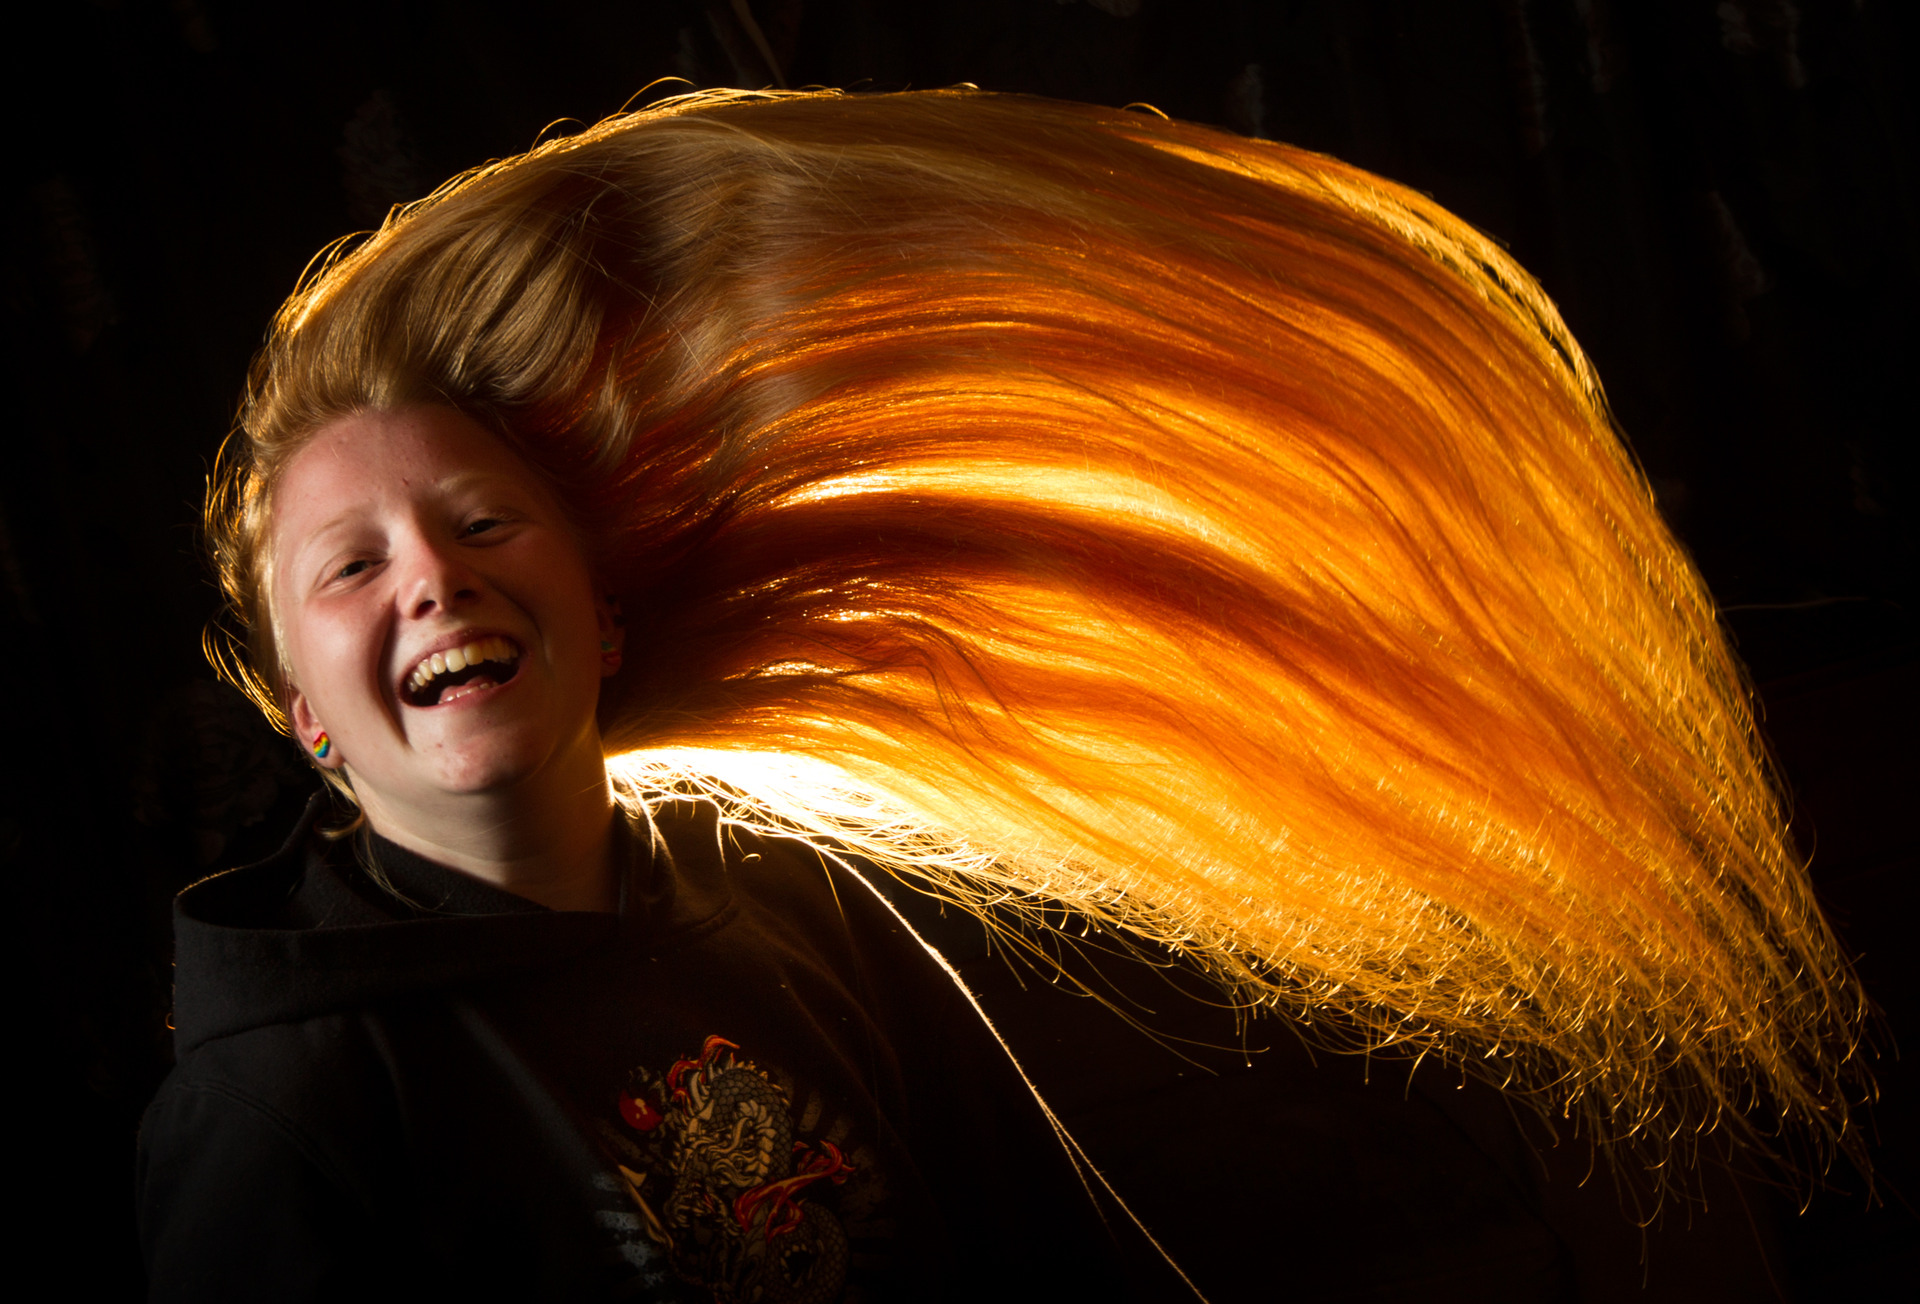 Rotorua 13-year-old's first haircut to raise funds for cancer cure